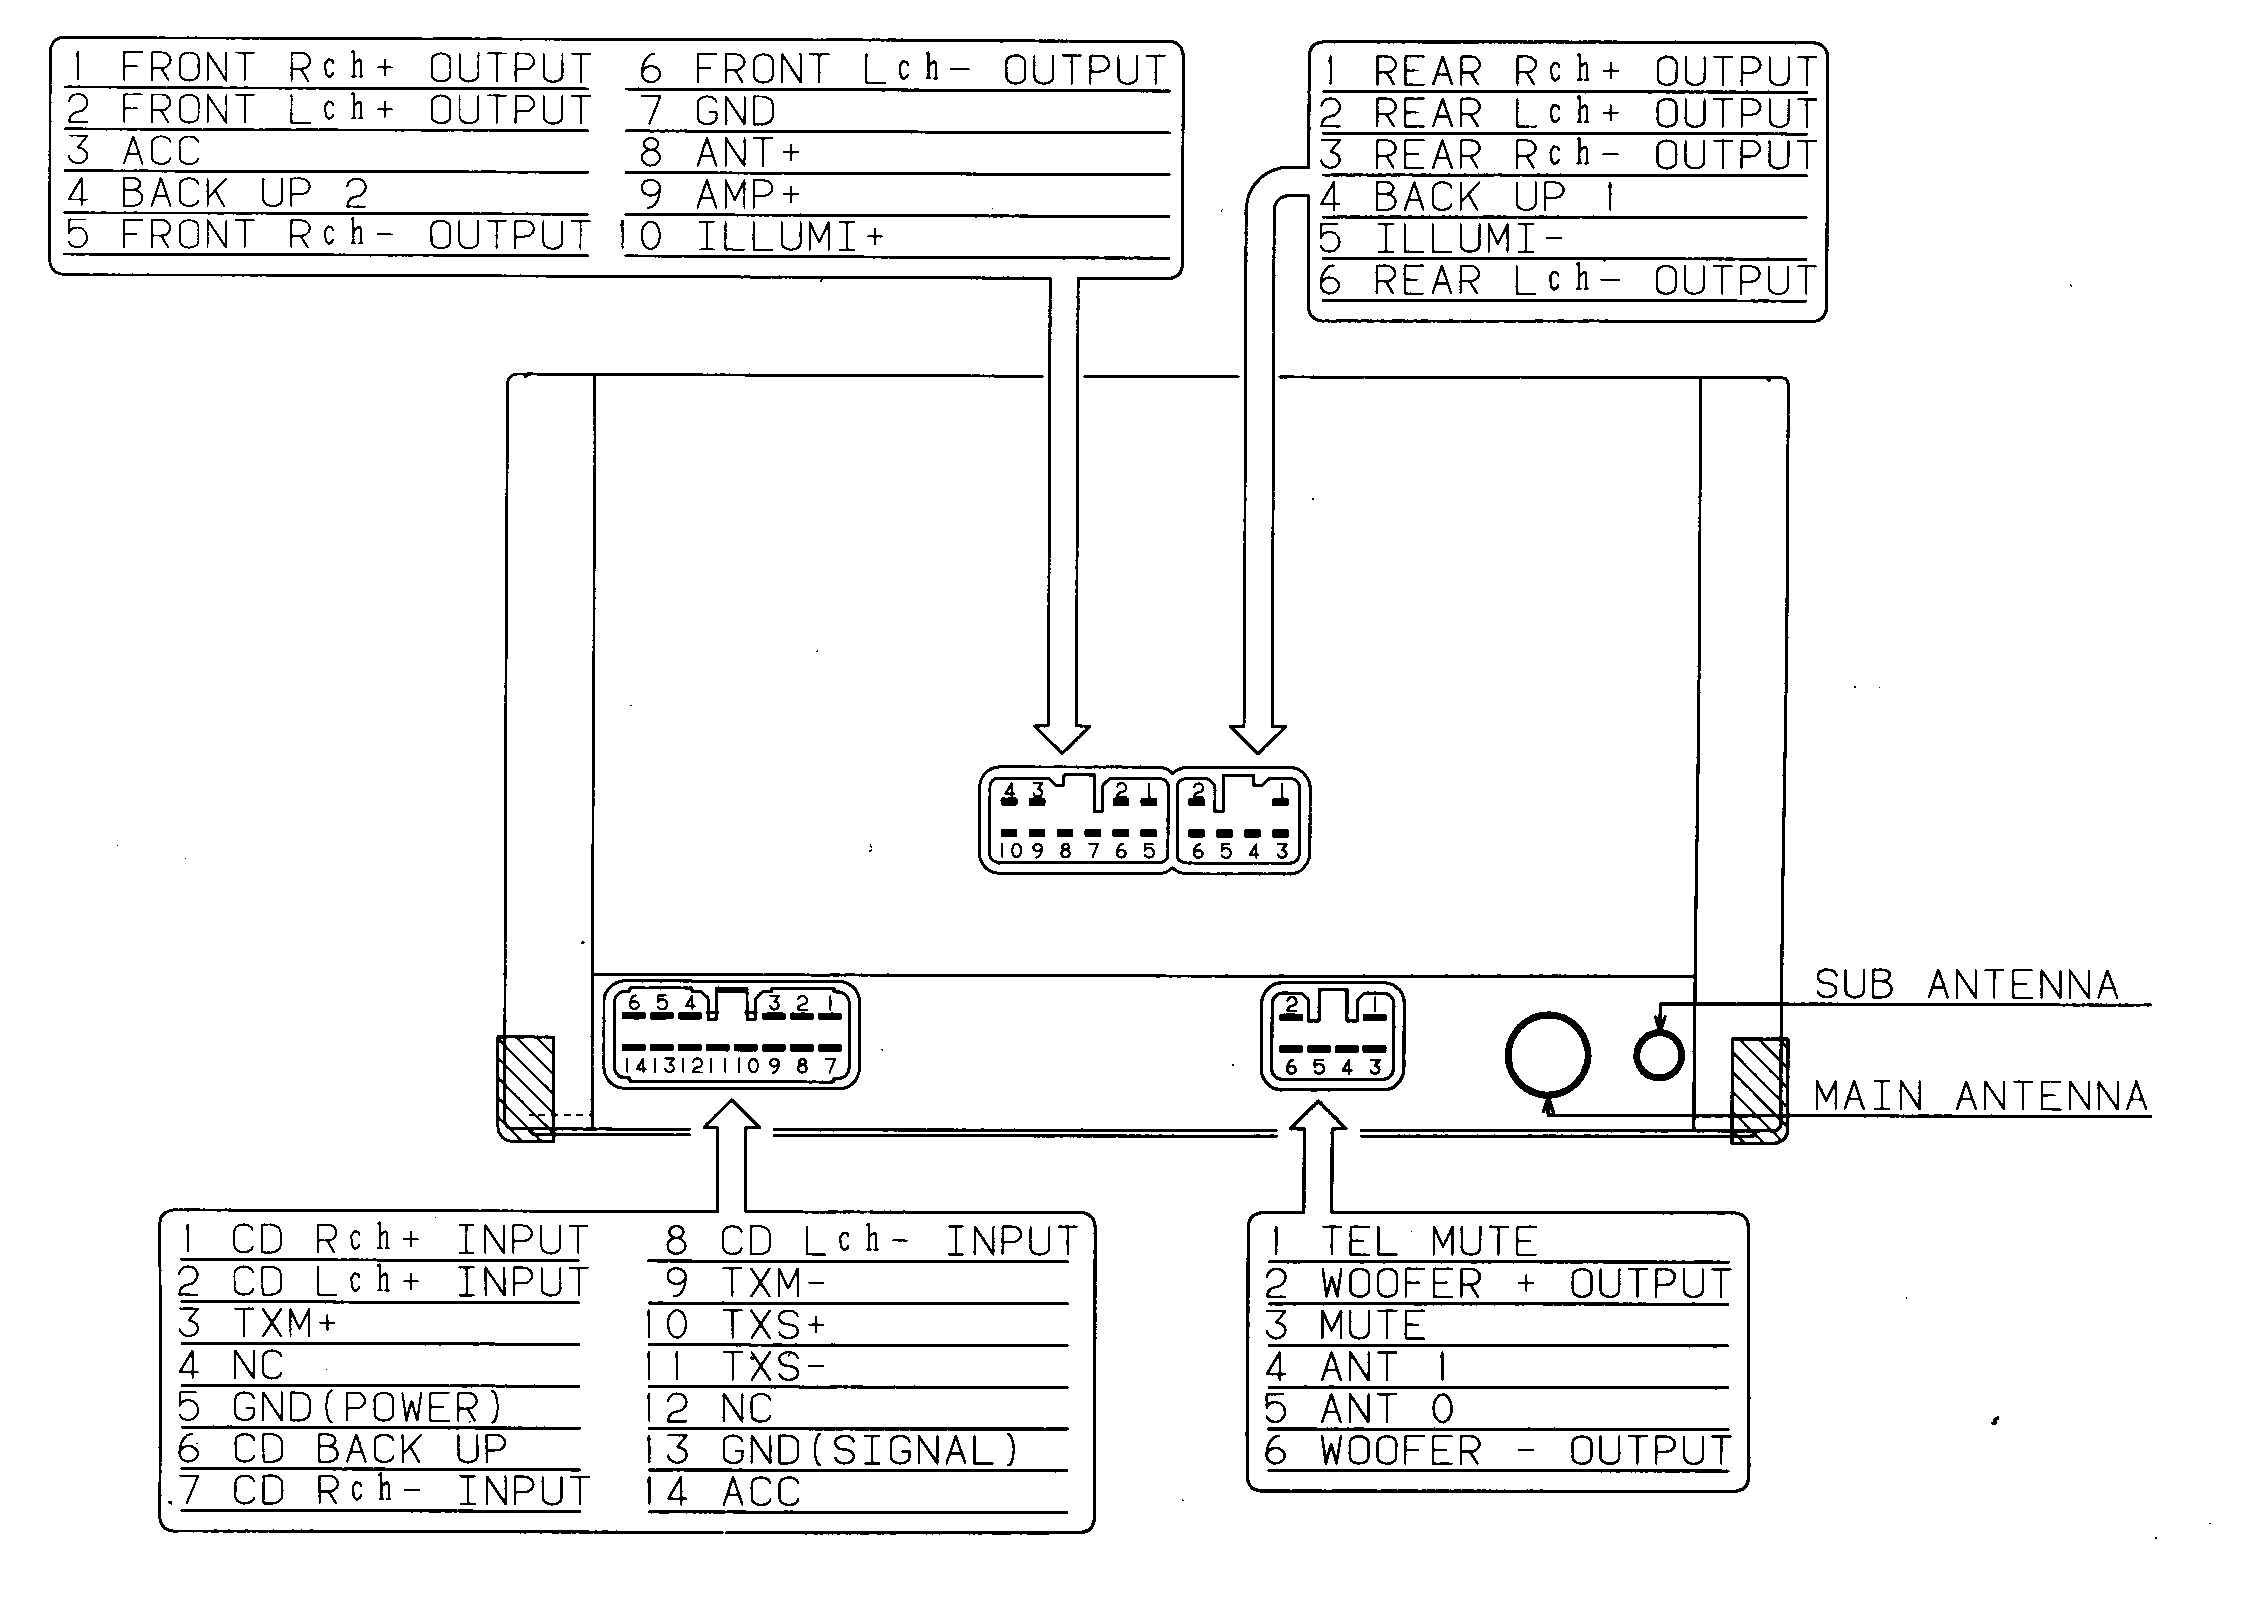 Lexus car stereo wiring diagram harness pinout connector wire lexus rx330 radio wiring diagram lexus rx330 parts diagram lexus wiring harness pigtails at panicattacktreatment.co